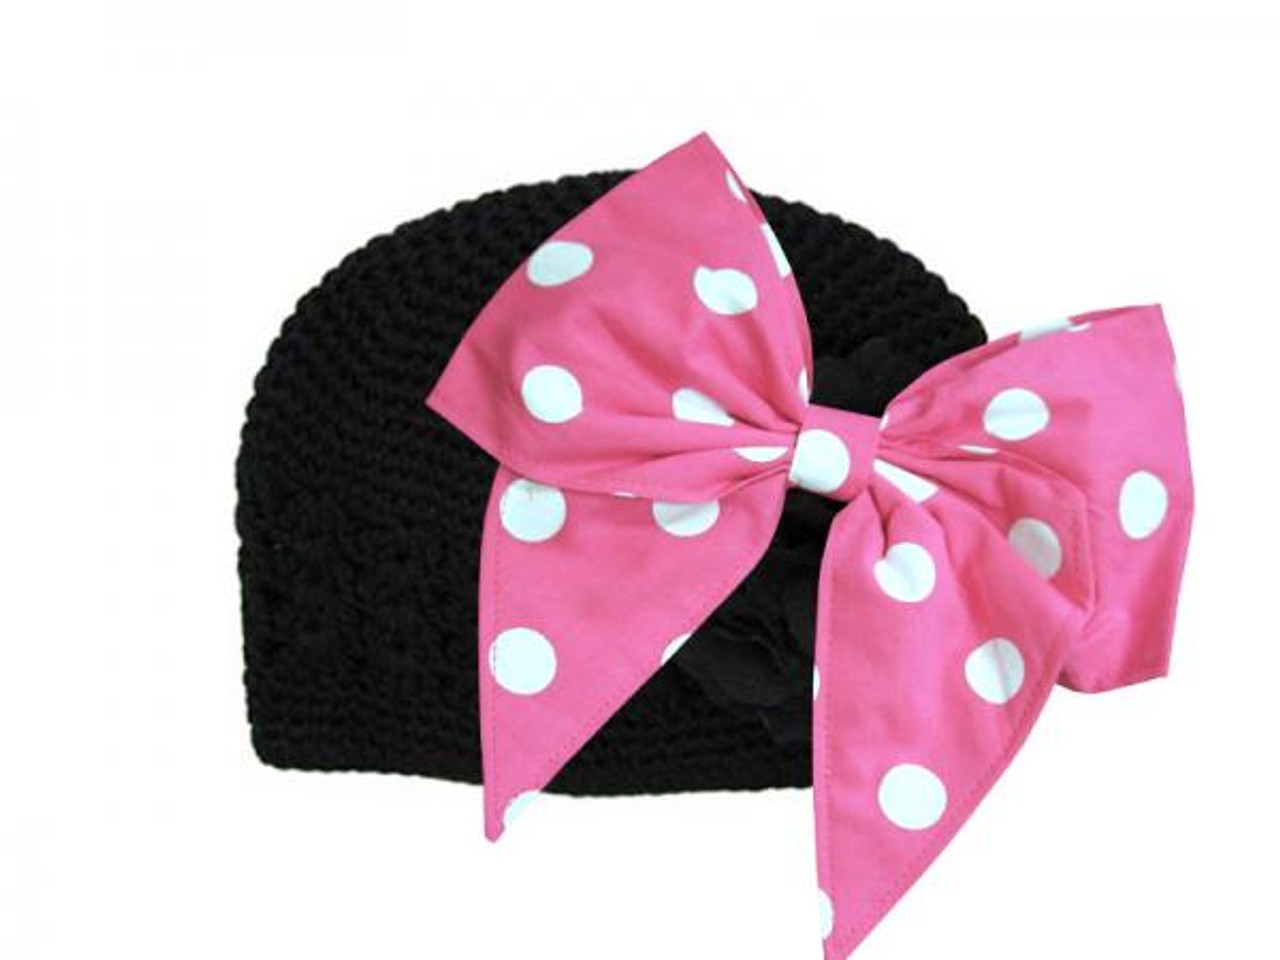 Pale Pink Bow-Rae-Mi Sun Hats with Candy Pink Bow-Rae-Mi Jamie Rae Hats